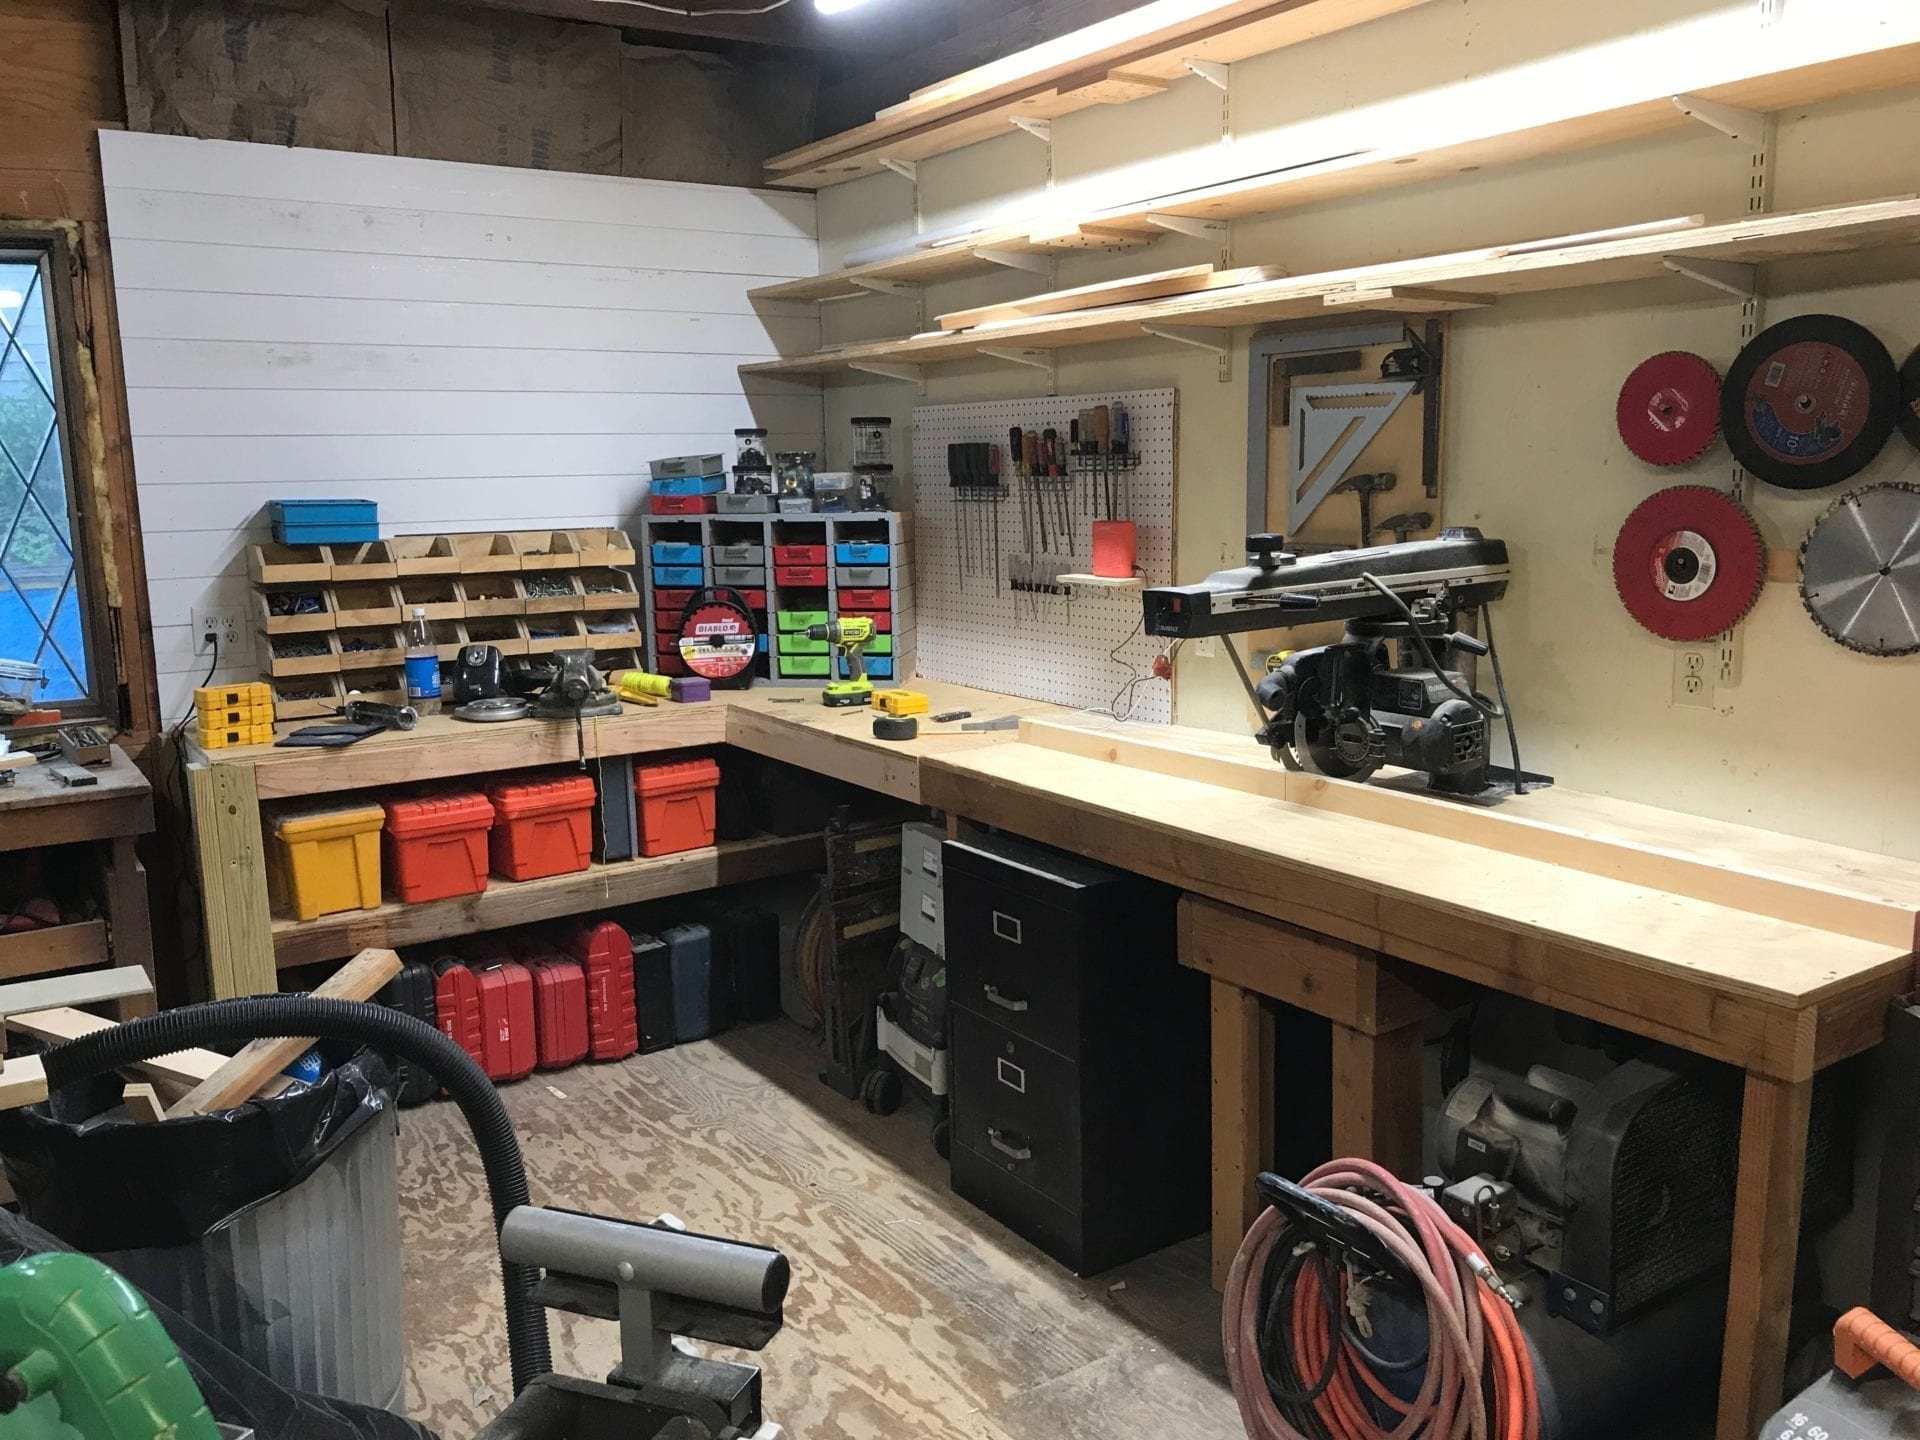 tools, screws, cabinets and shelving space in newly renovated workshop